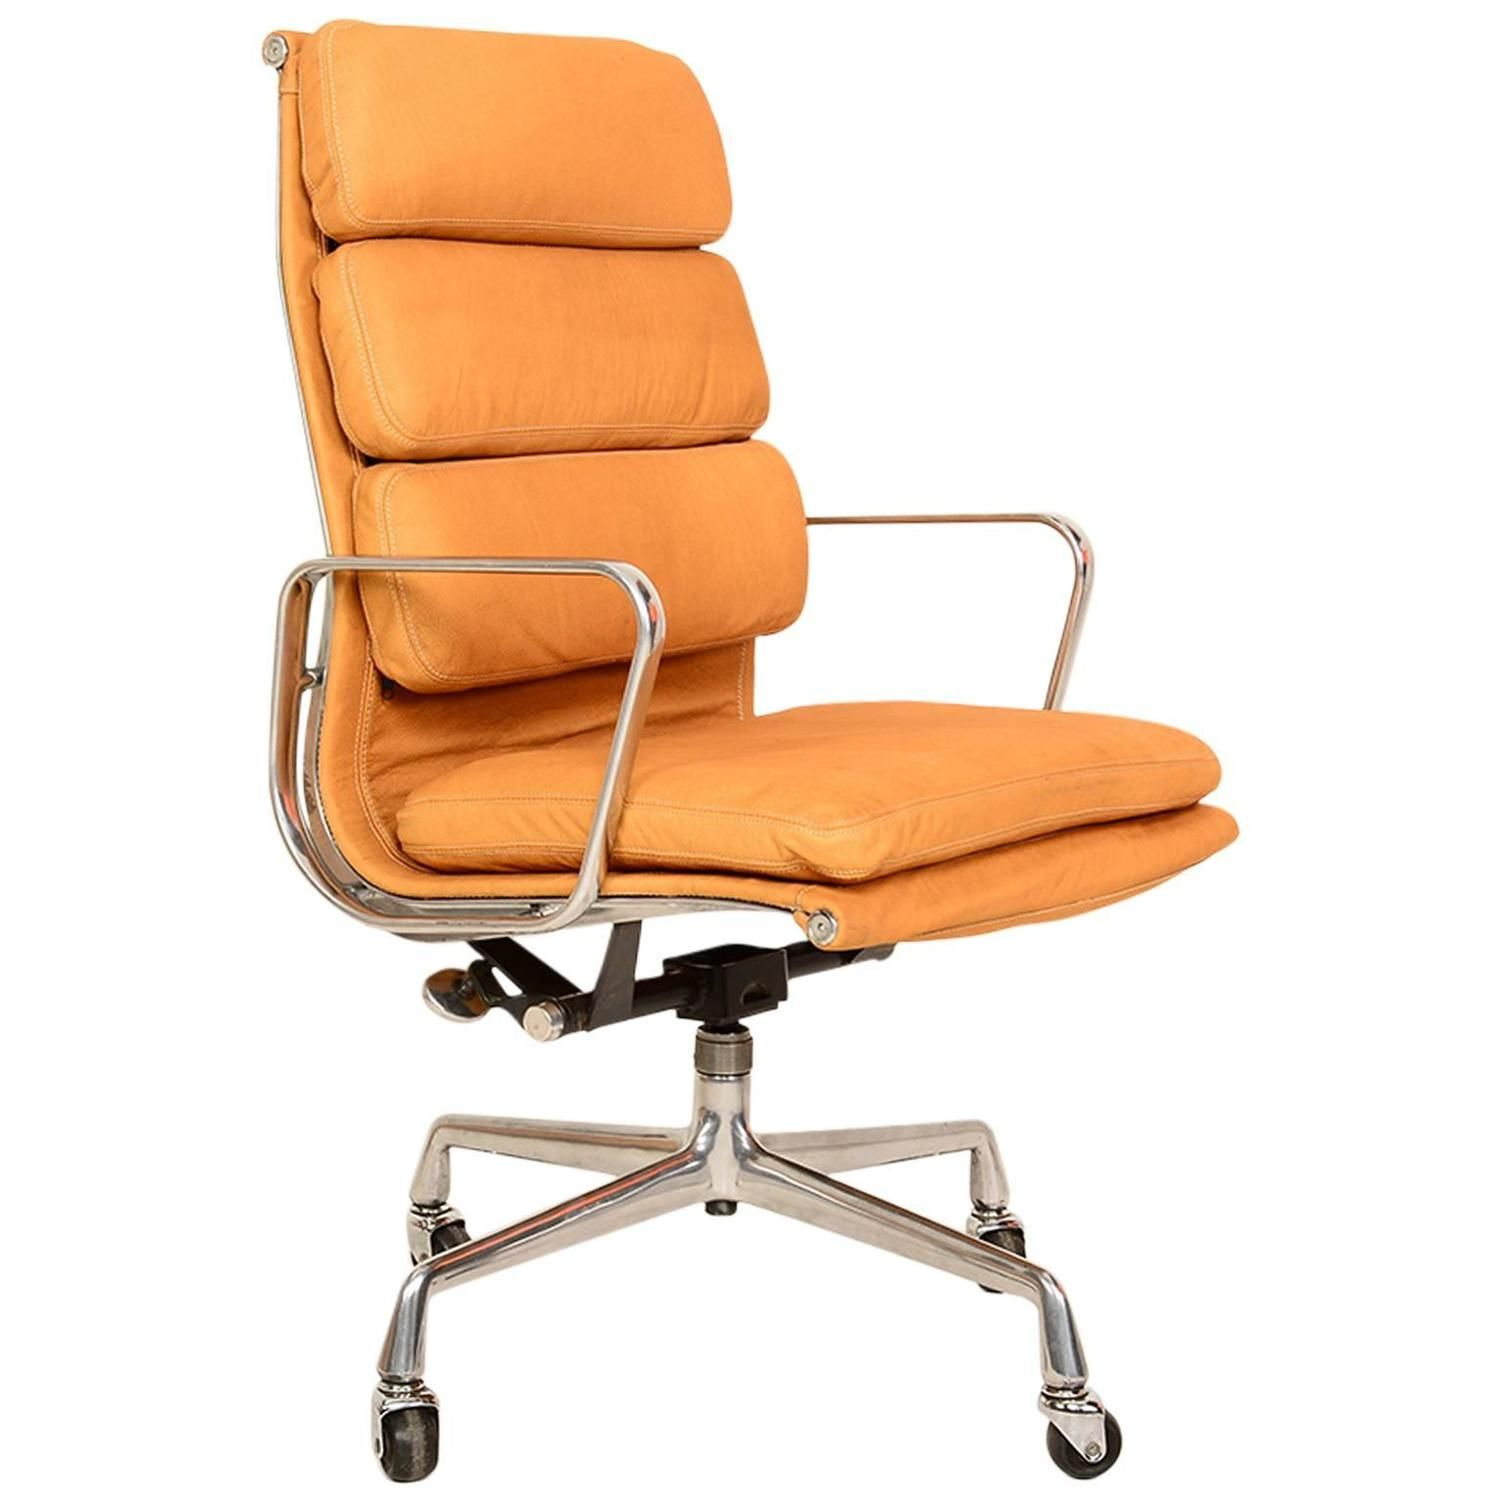 Executive Soft Pad Chair by Eames for Herman Miller  sc 1 th 225 & Executive Soft Pad Chair by Eames for Herman Miller | Herman miller